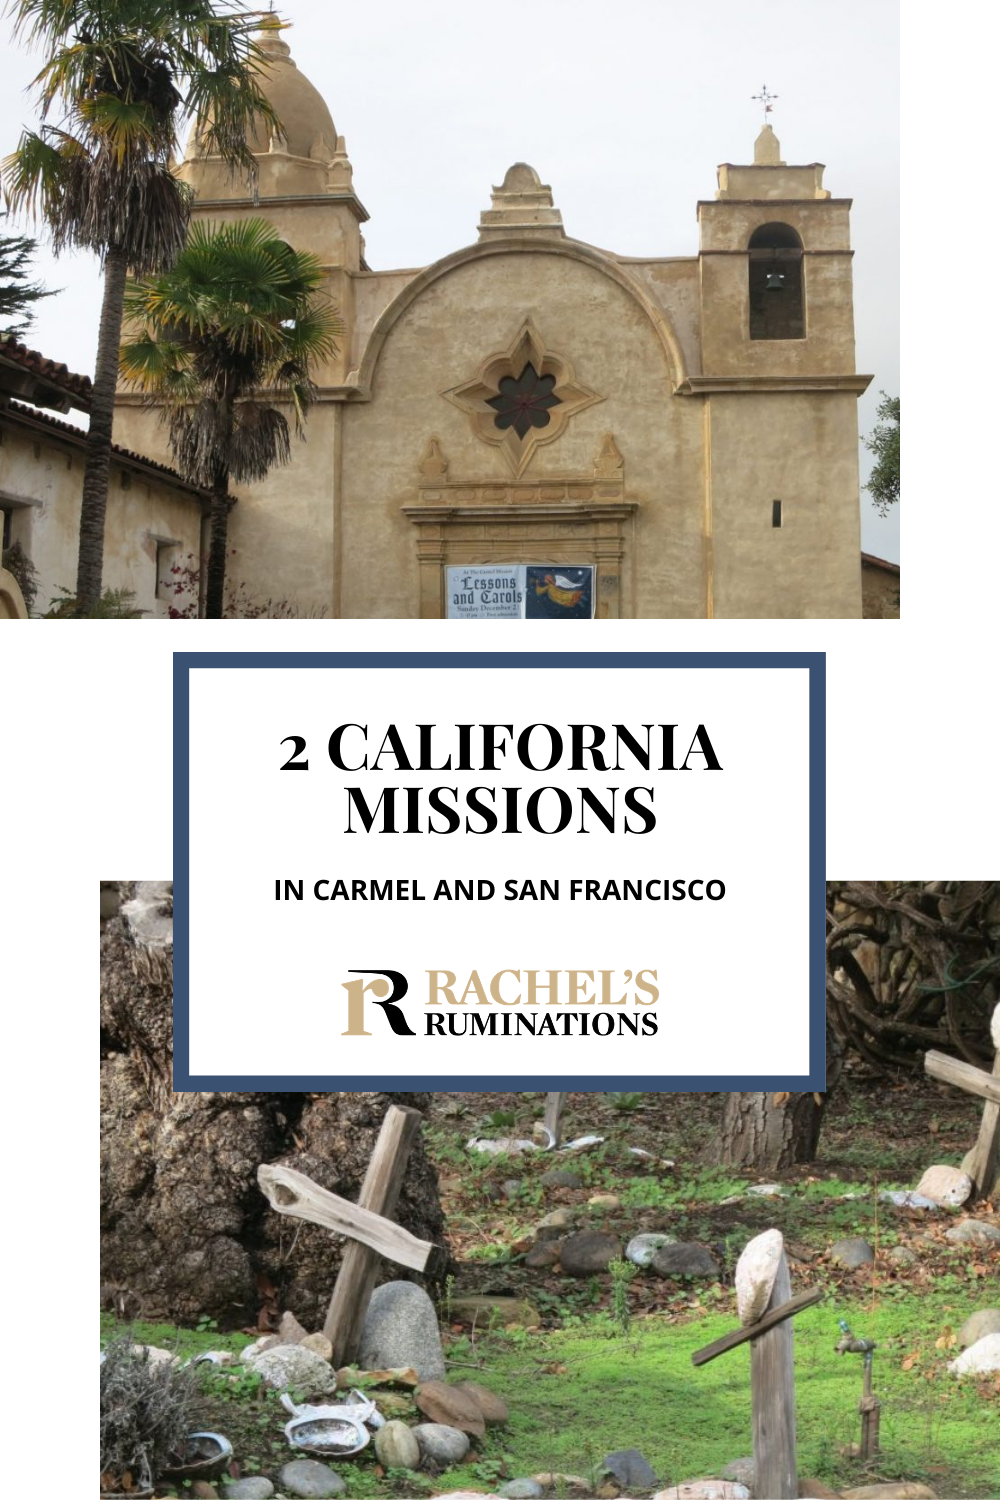 Carmel Mission and Mission Delores are historic churches in the California mission system that lines the coast from San Diego to Sonoma, dating from long before the Gold Rush. via @rachelsruminations